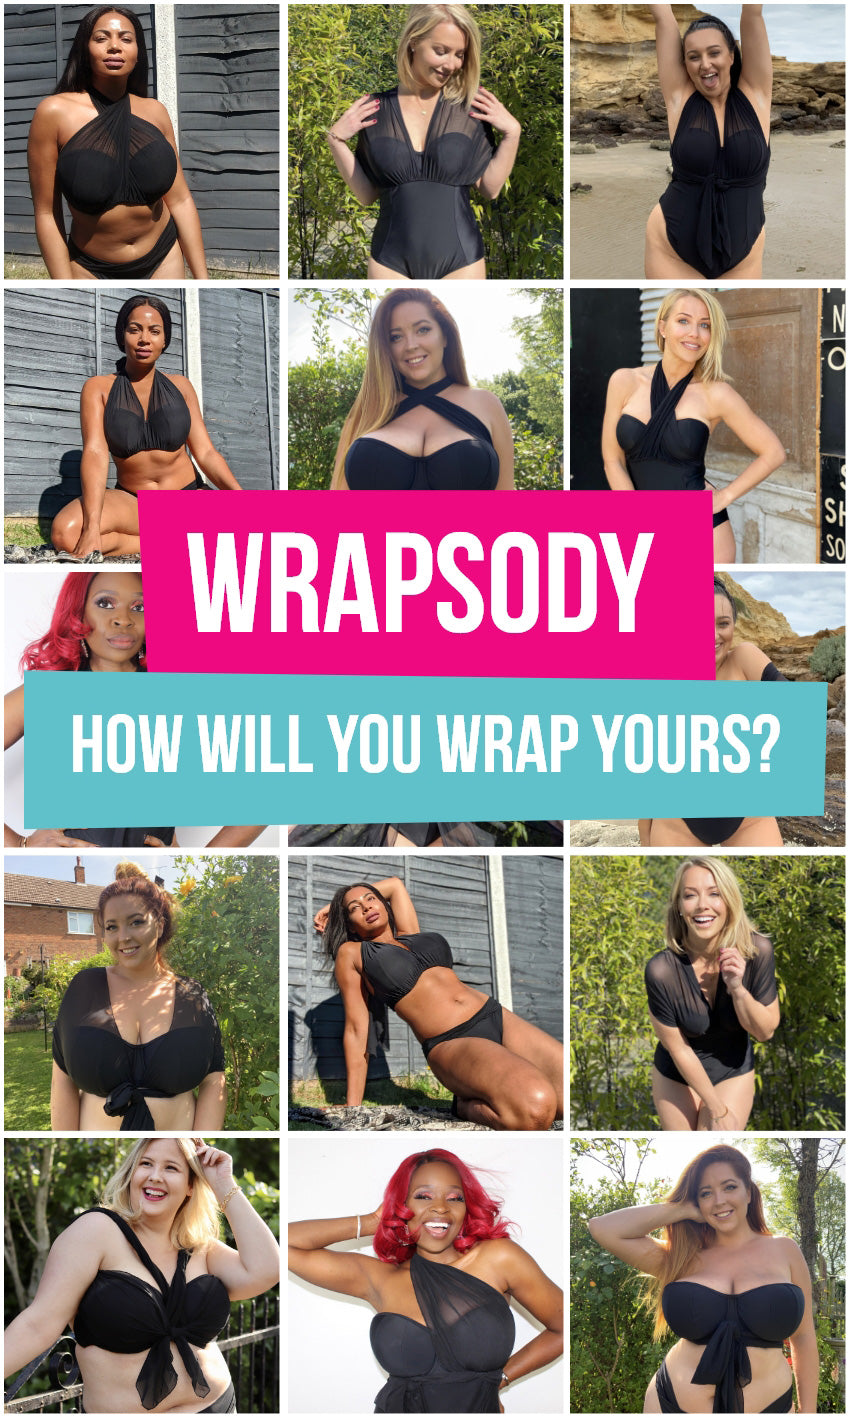 Wrapsody - How will you wrap yours?